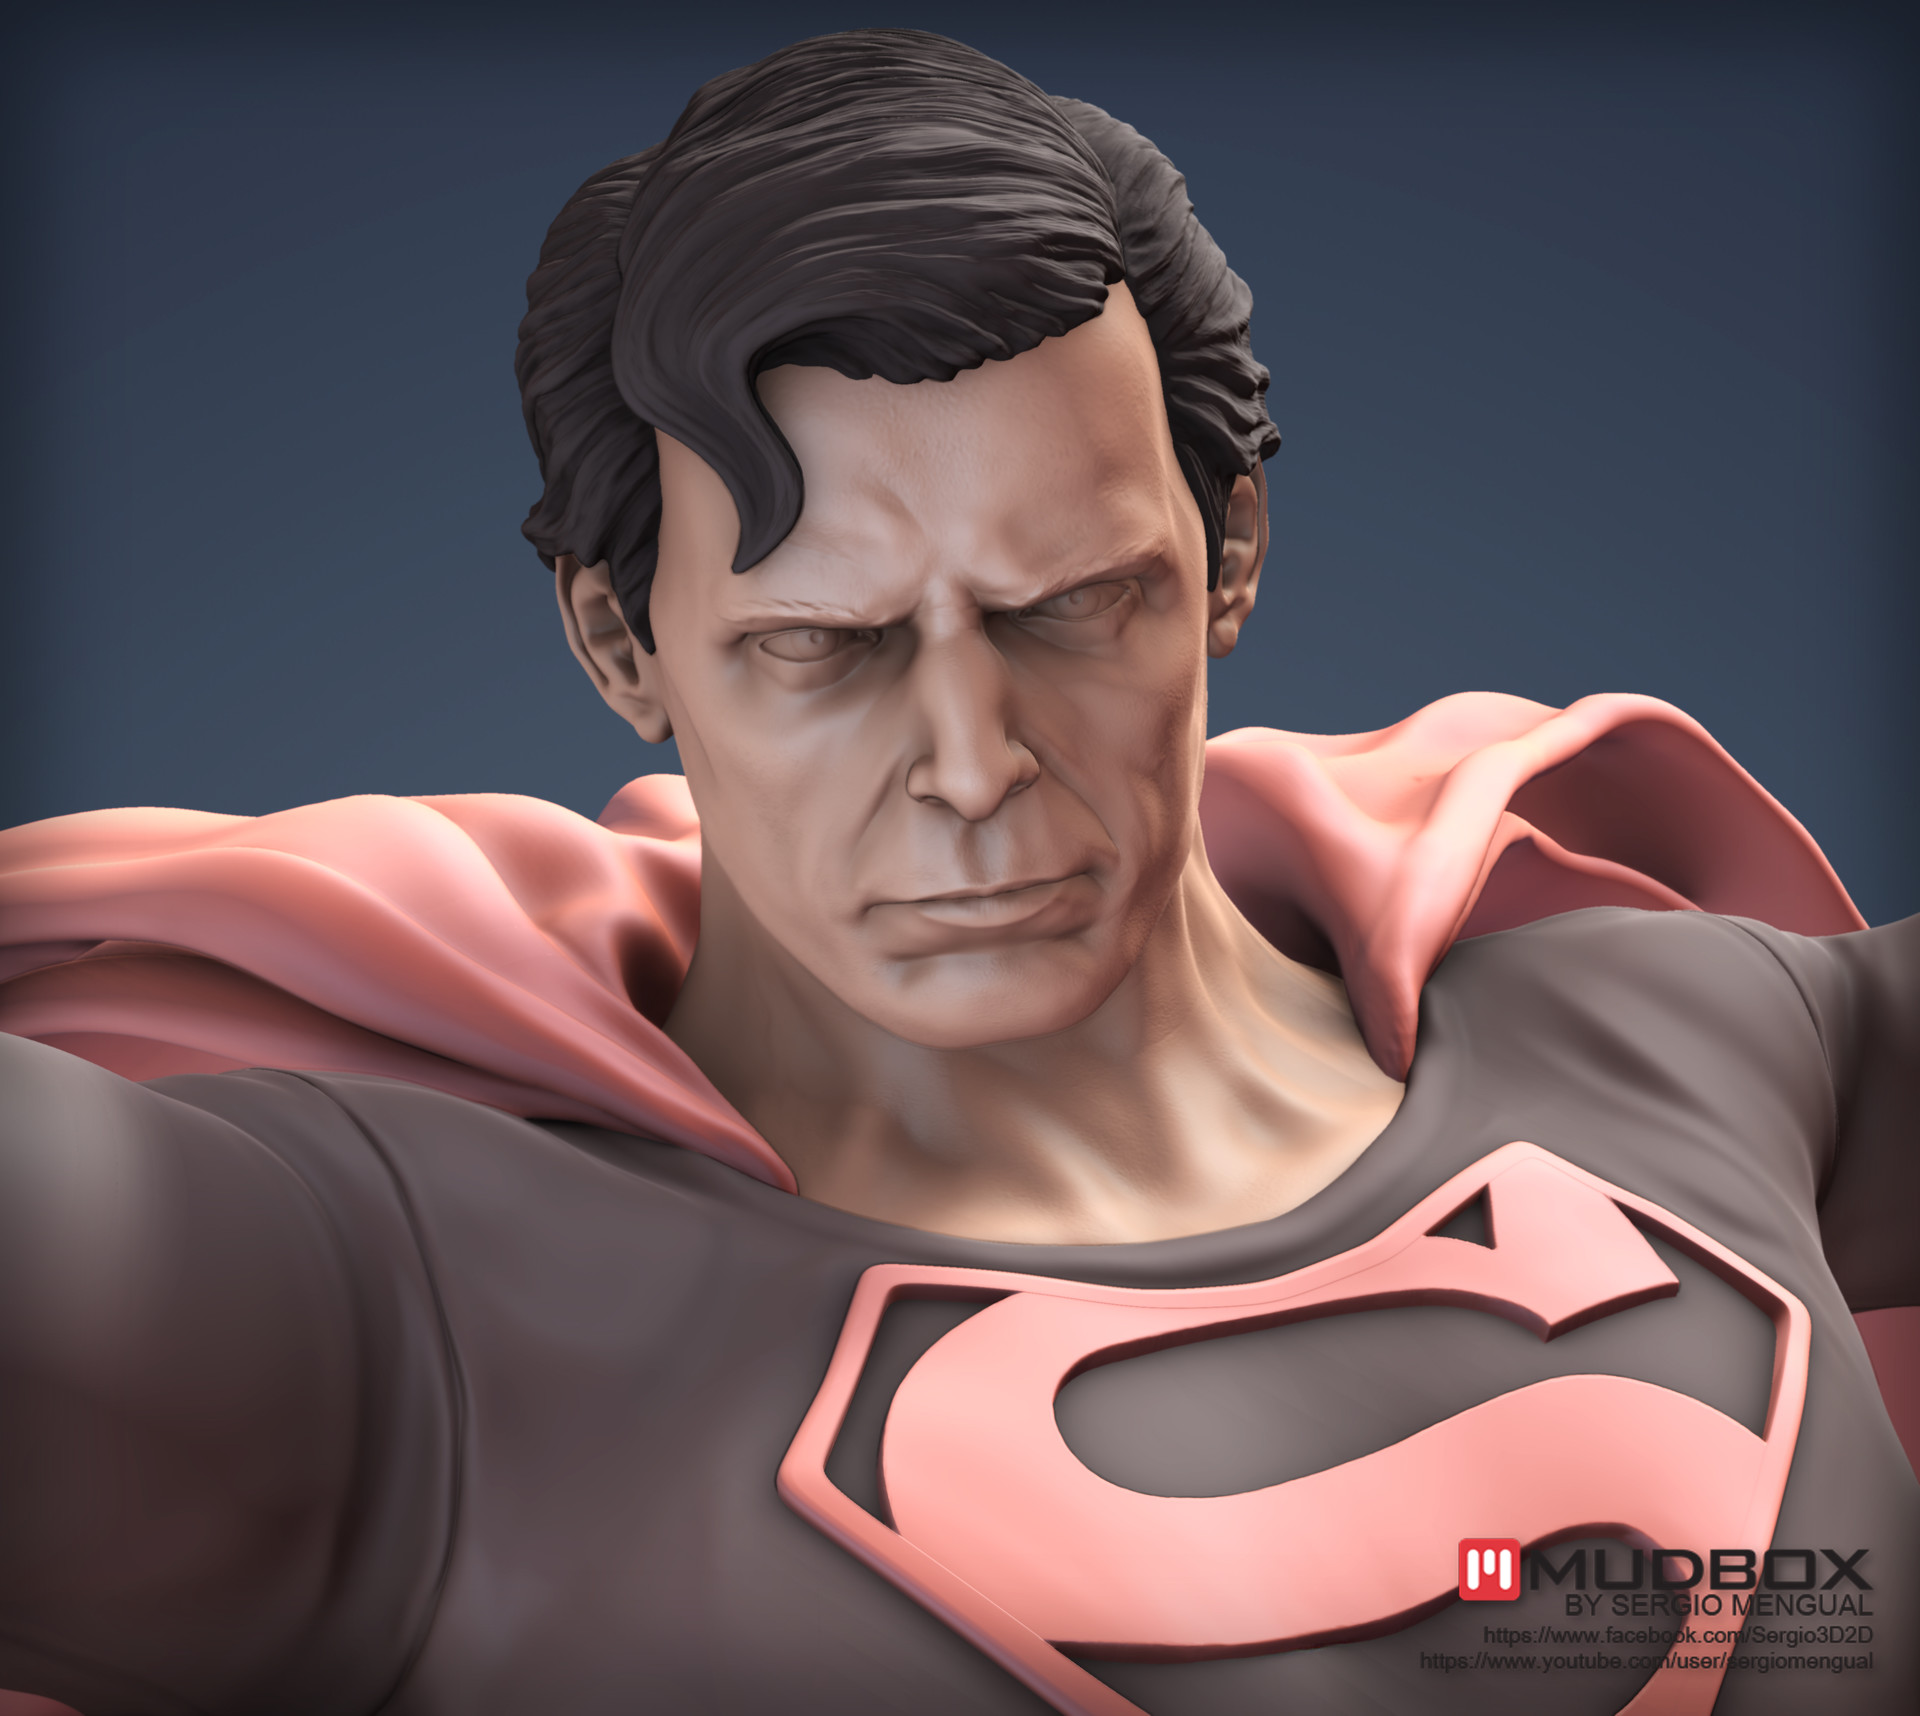 Sergio gabriel mengual superman face publish1